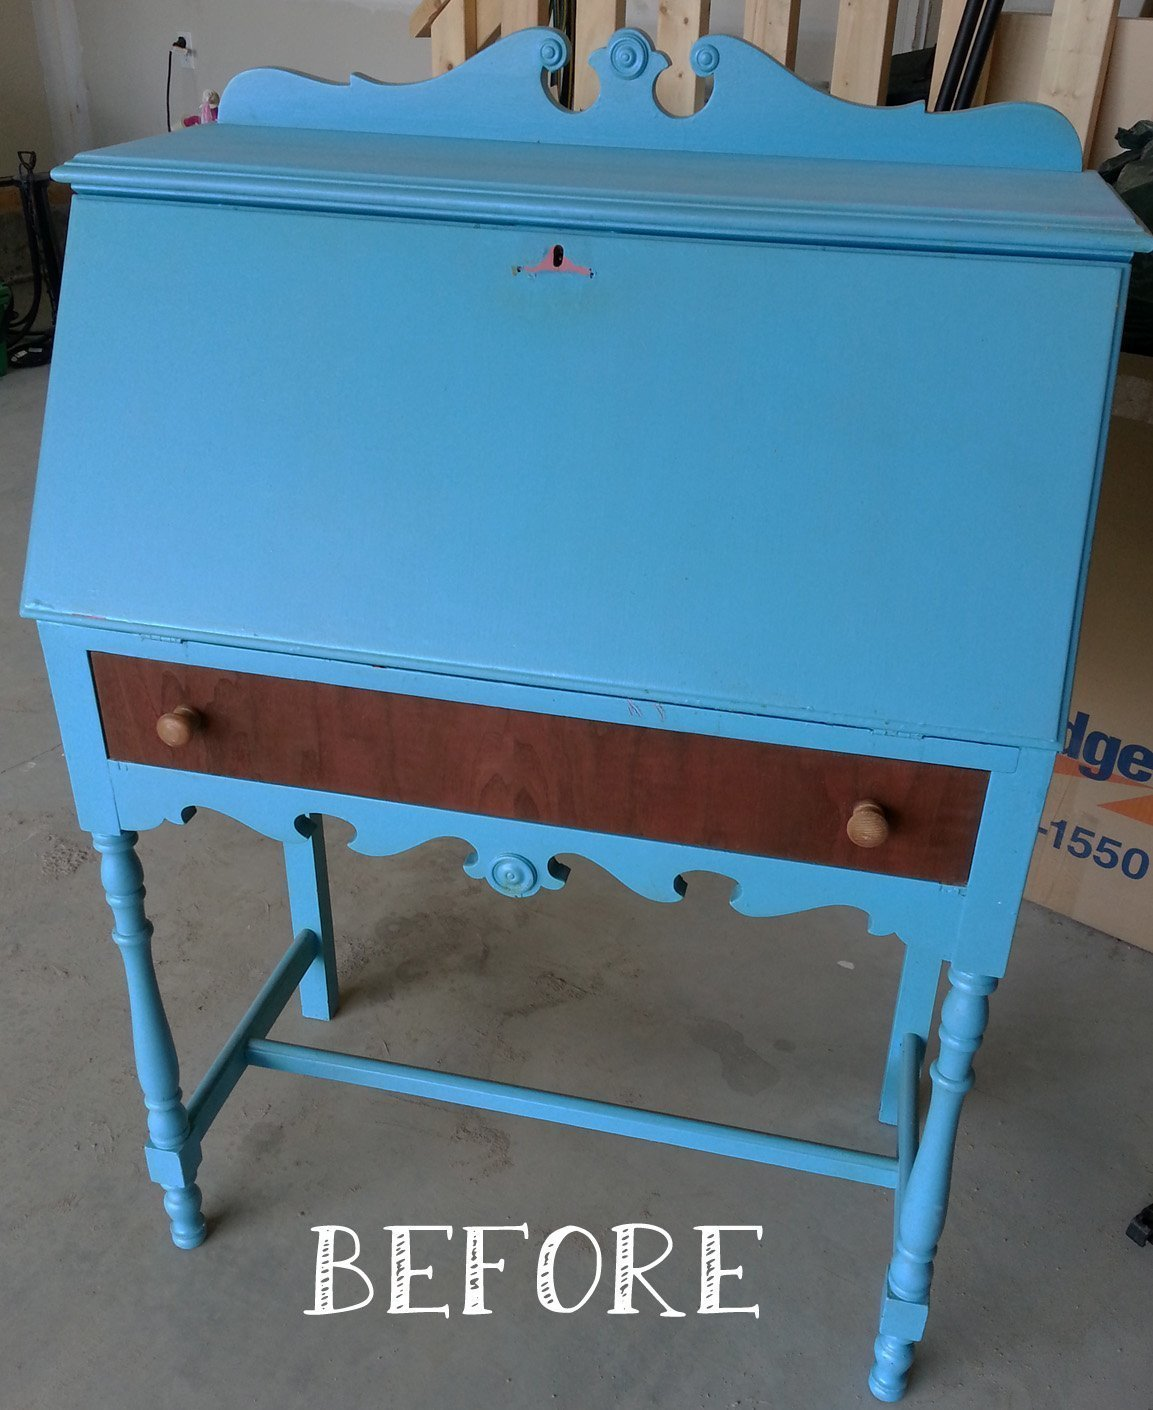 A Vintage Secretary Desk DIY